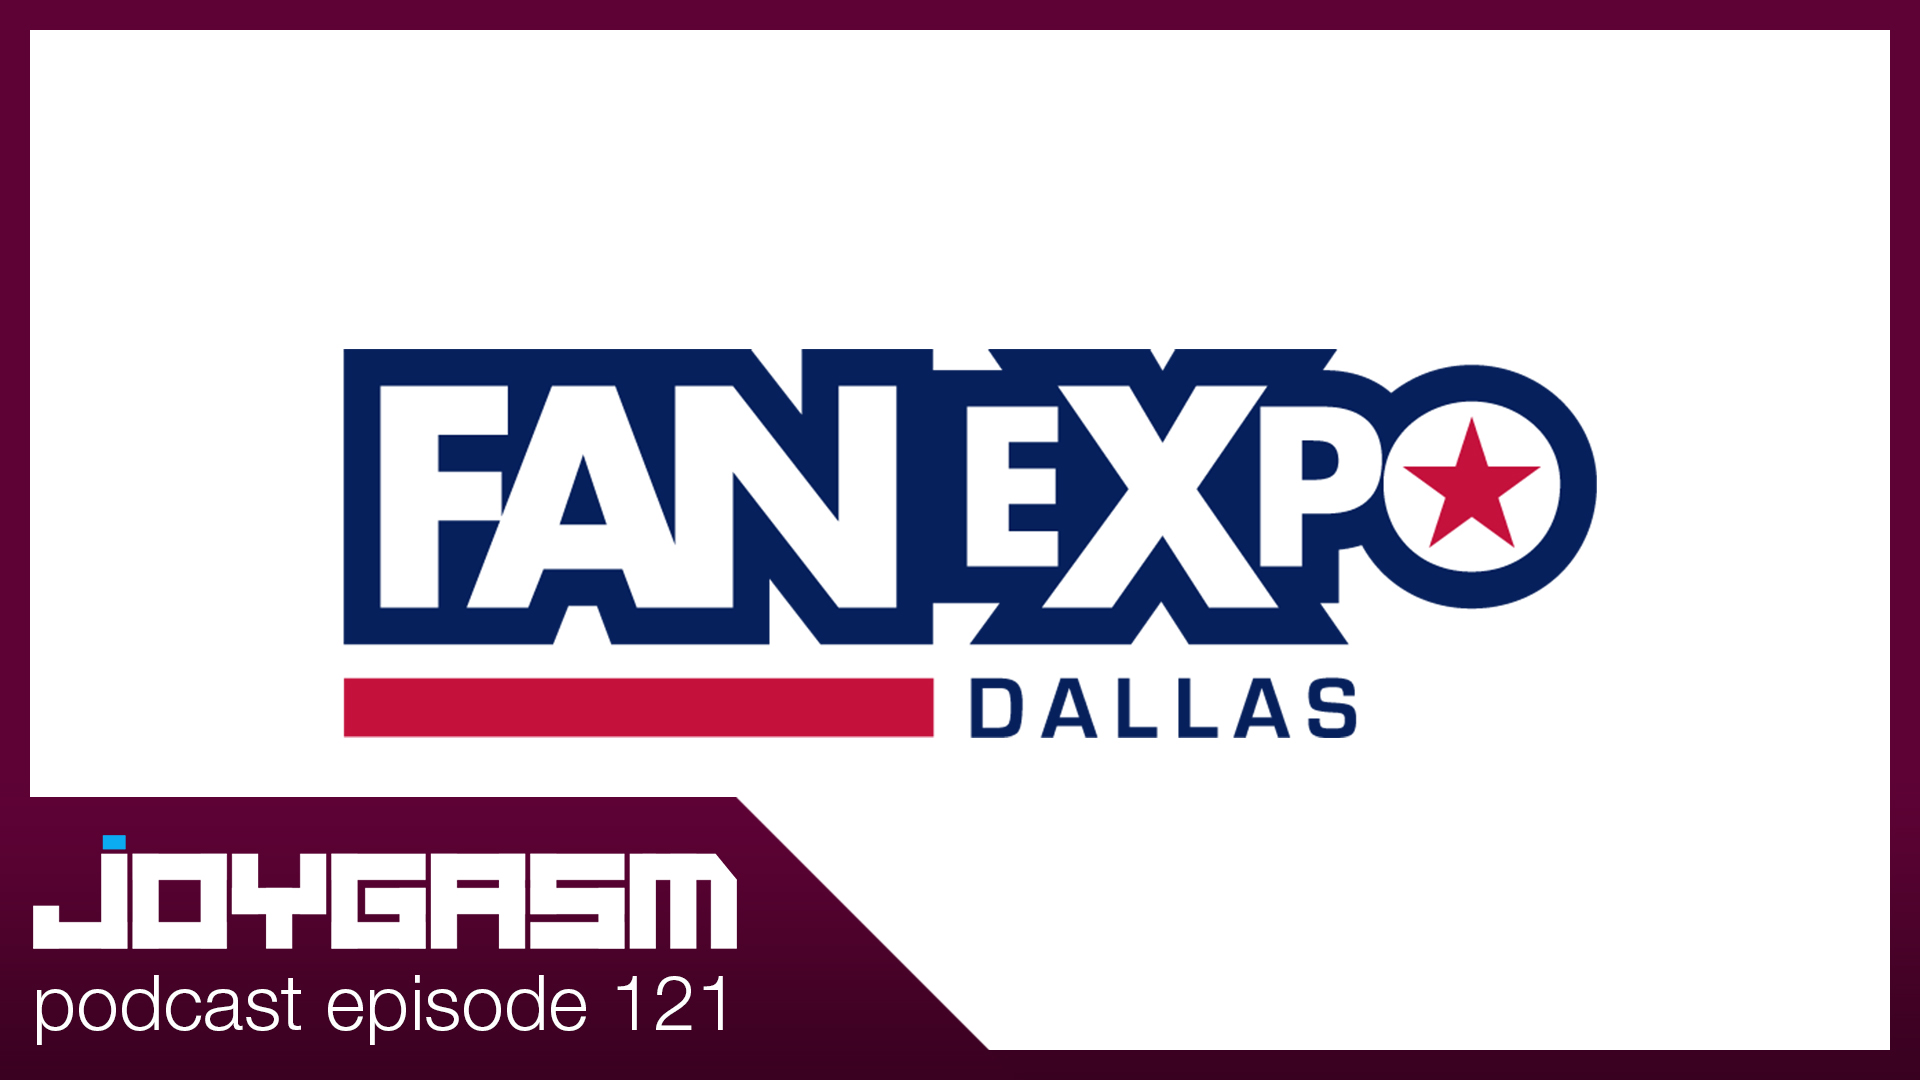 Ep. 121: Fan Expo Dallas 2019